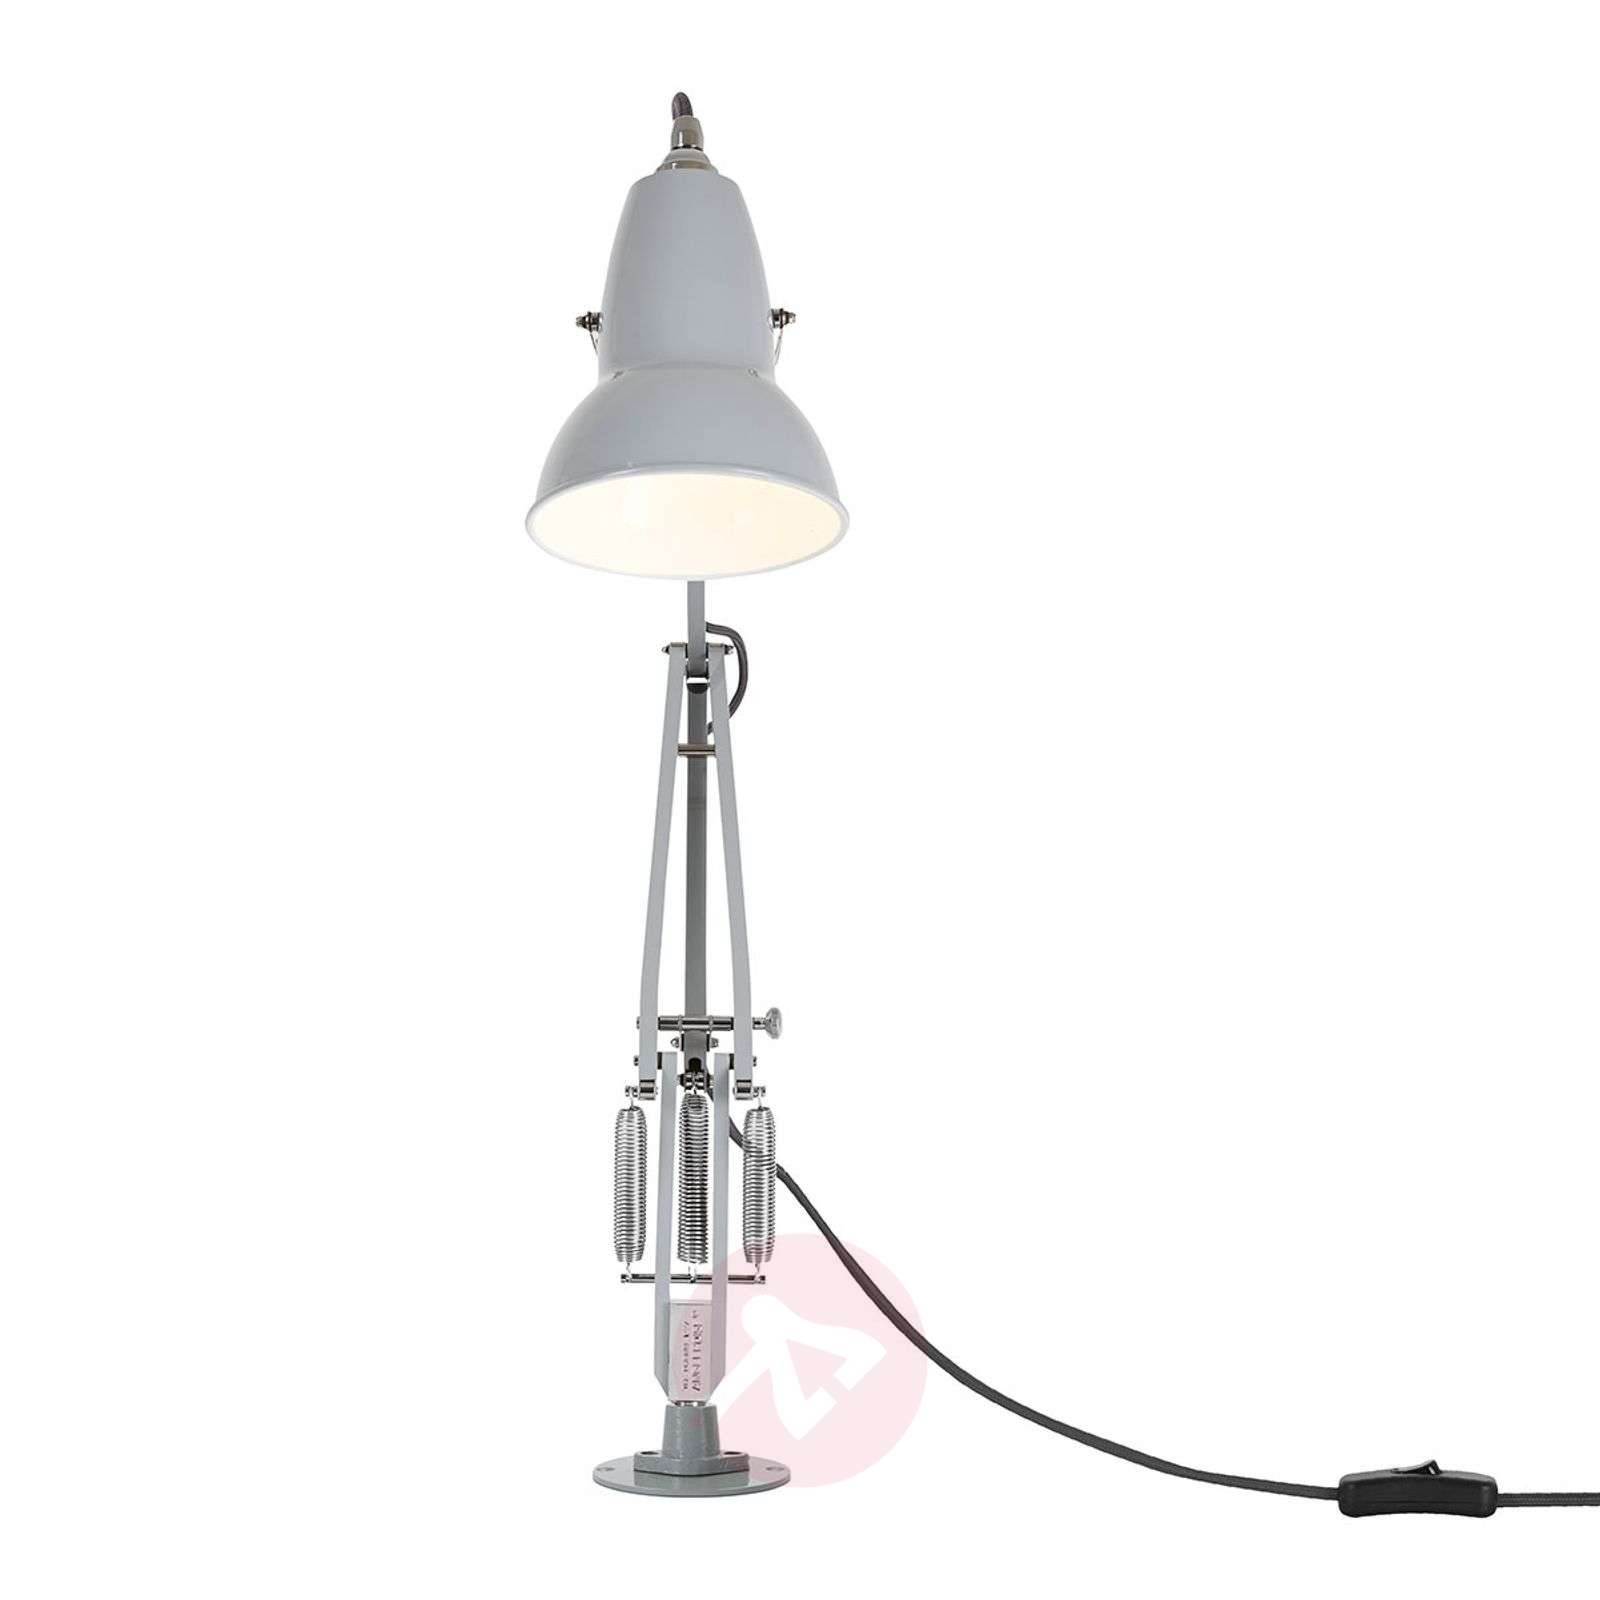 Anglepoise Original 1227 table lamp screw base-1073027X-01